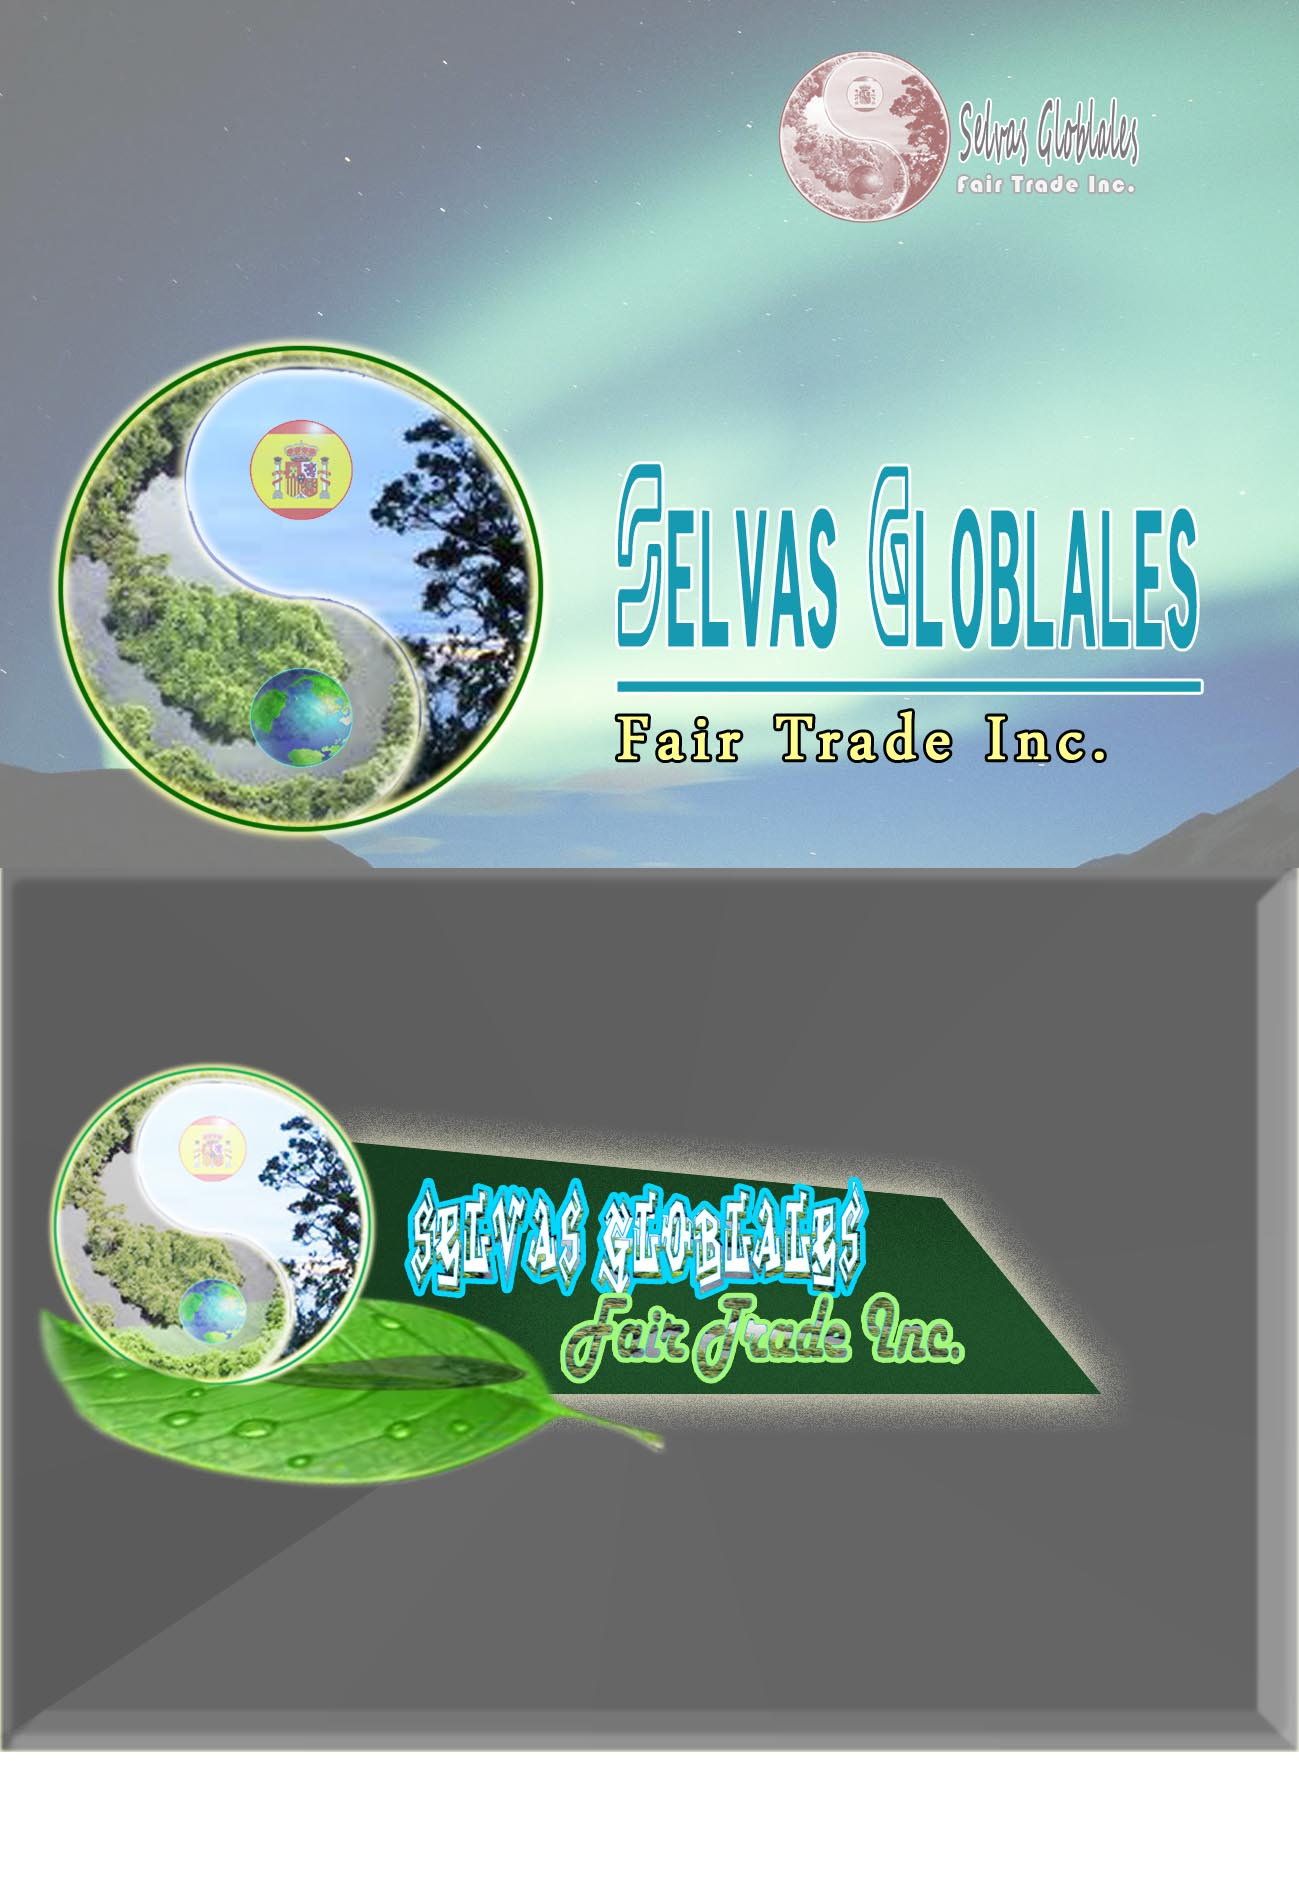 Logo Design by faza-bejo - Entry No. 130 in the Logo Design Contest Captivating Logo Design for Selvas Globales Fair Trade Inc..